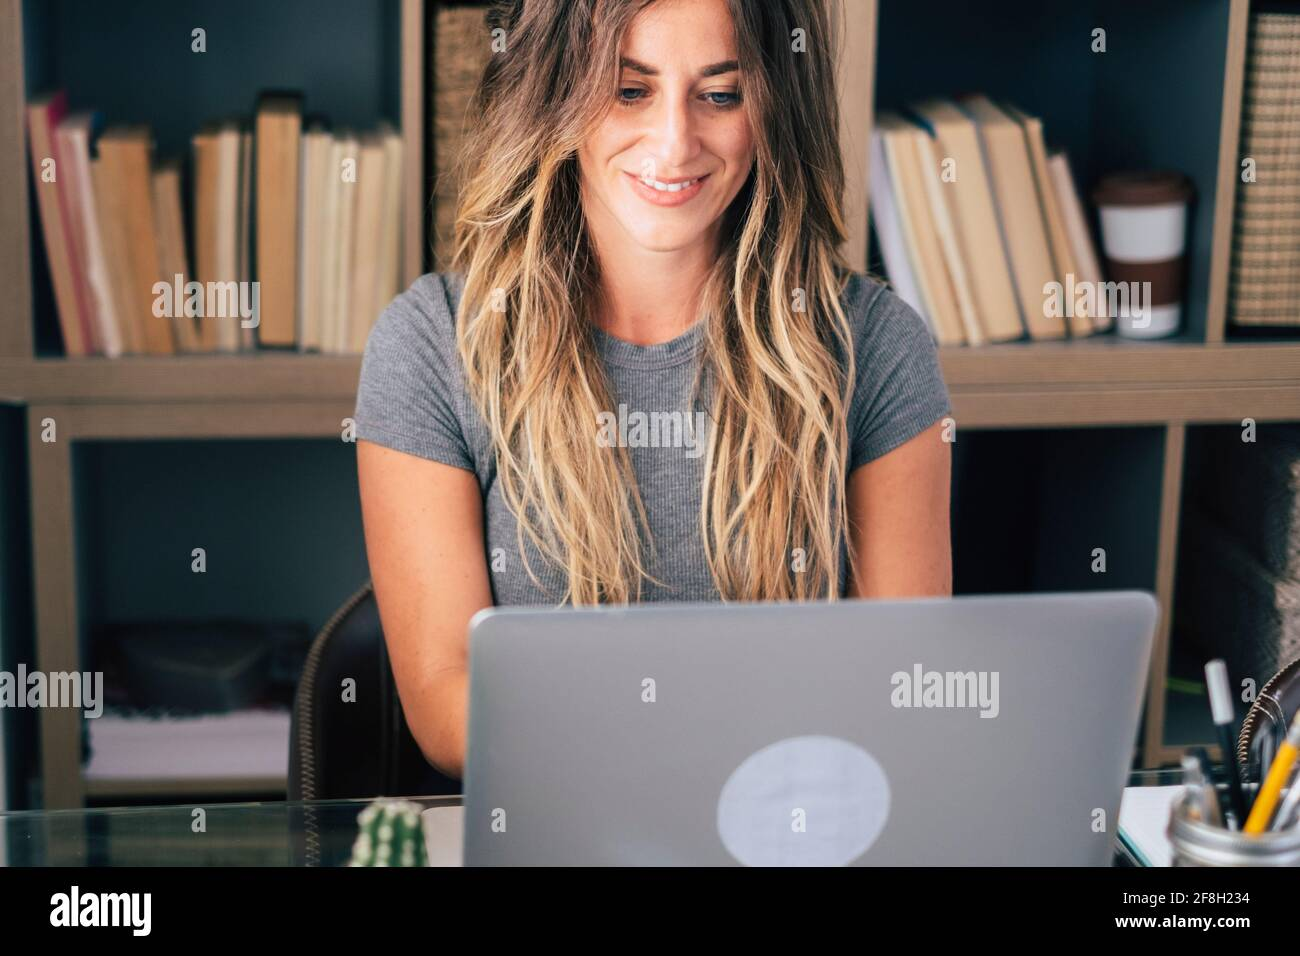 Young businesswoman write on laptop computer at home in smart working office job work activity - remote worker lifestyle concept with pretty female pe Stock Photo